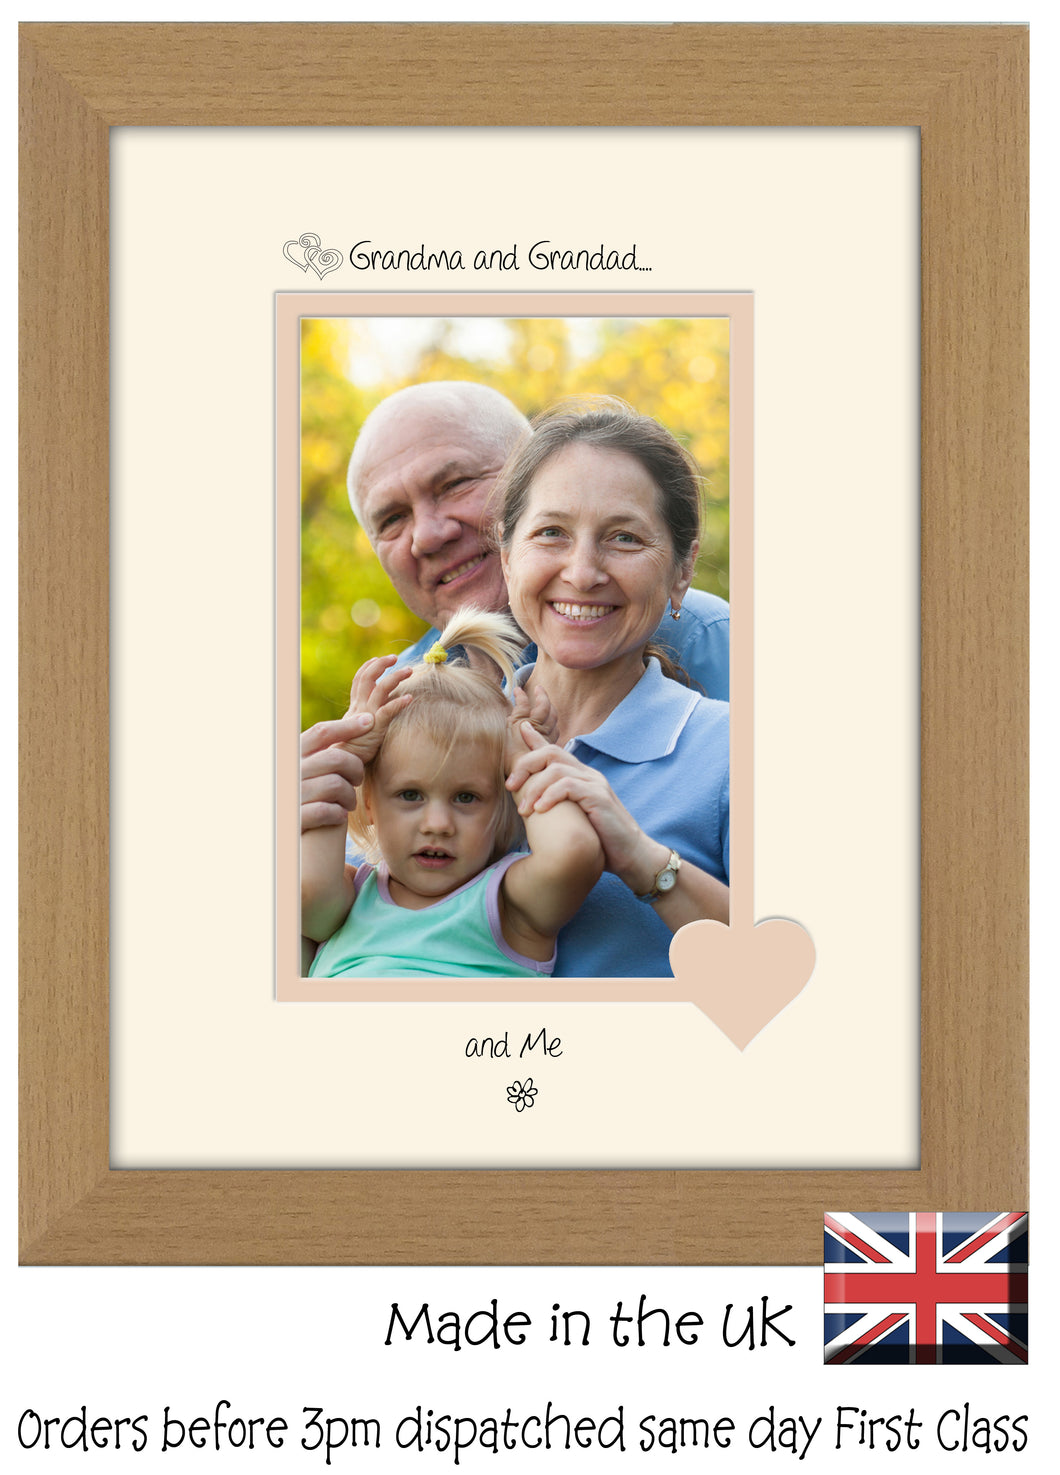 Grandma & Grandad Photo Frame - Grandma and Grandad… ...and me! Portrait photo frame 6